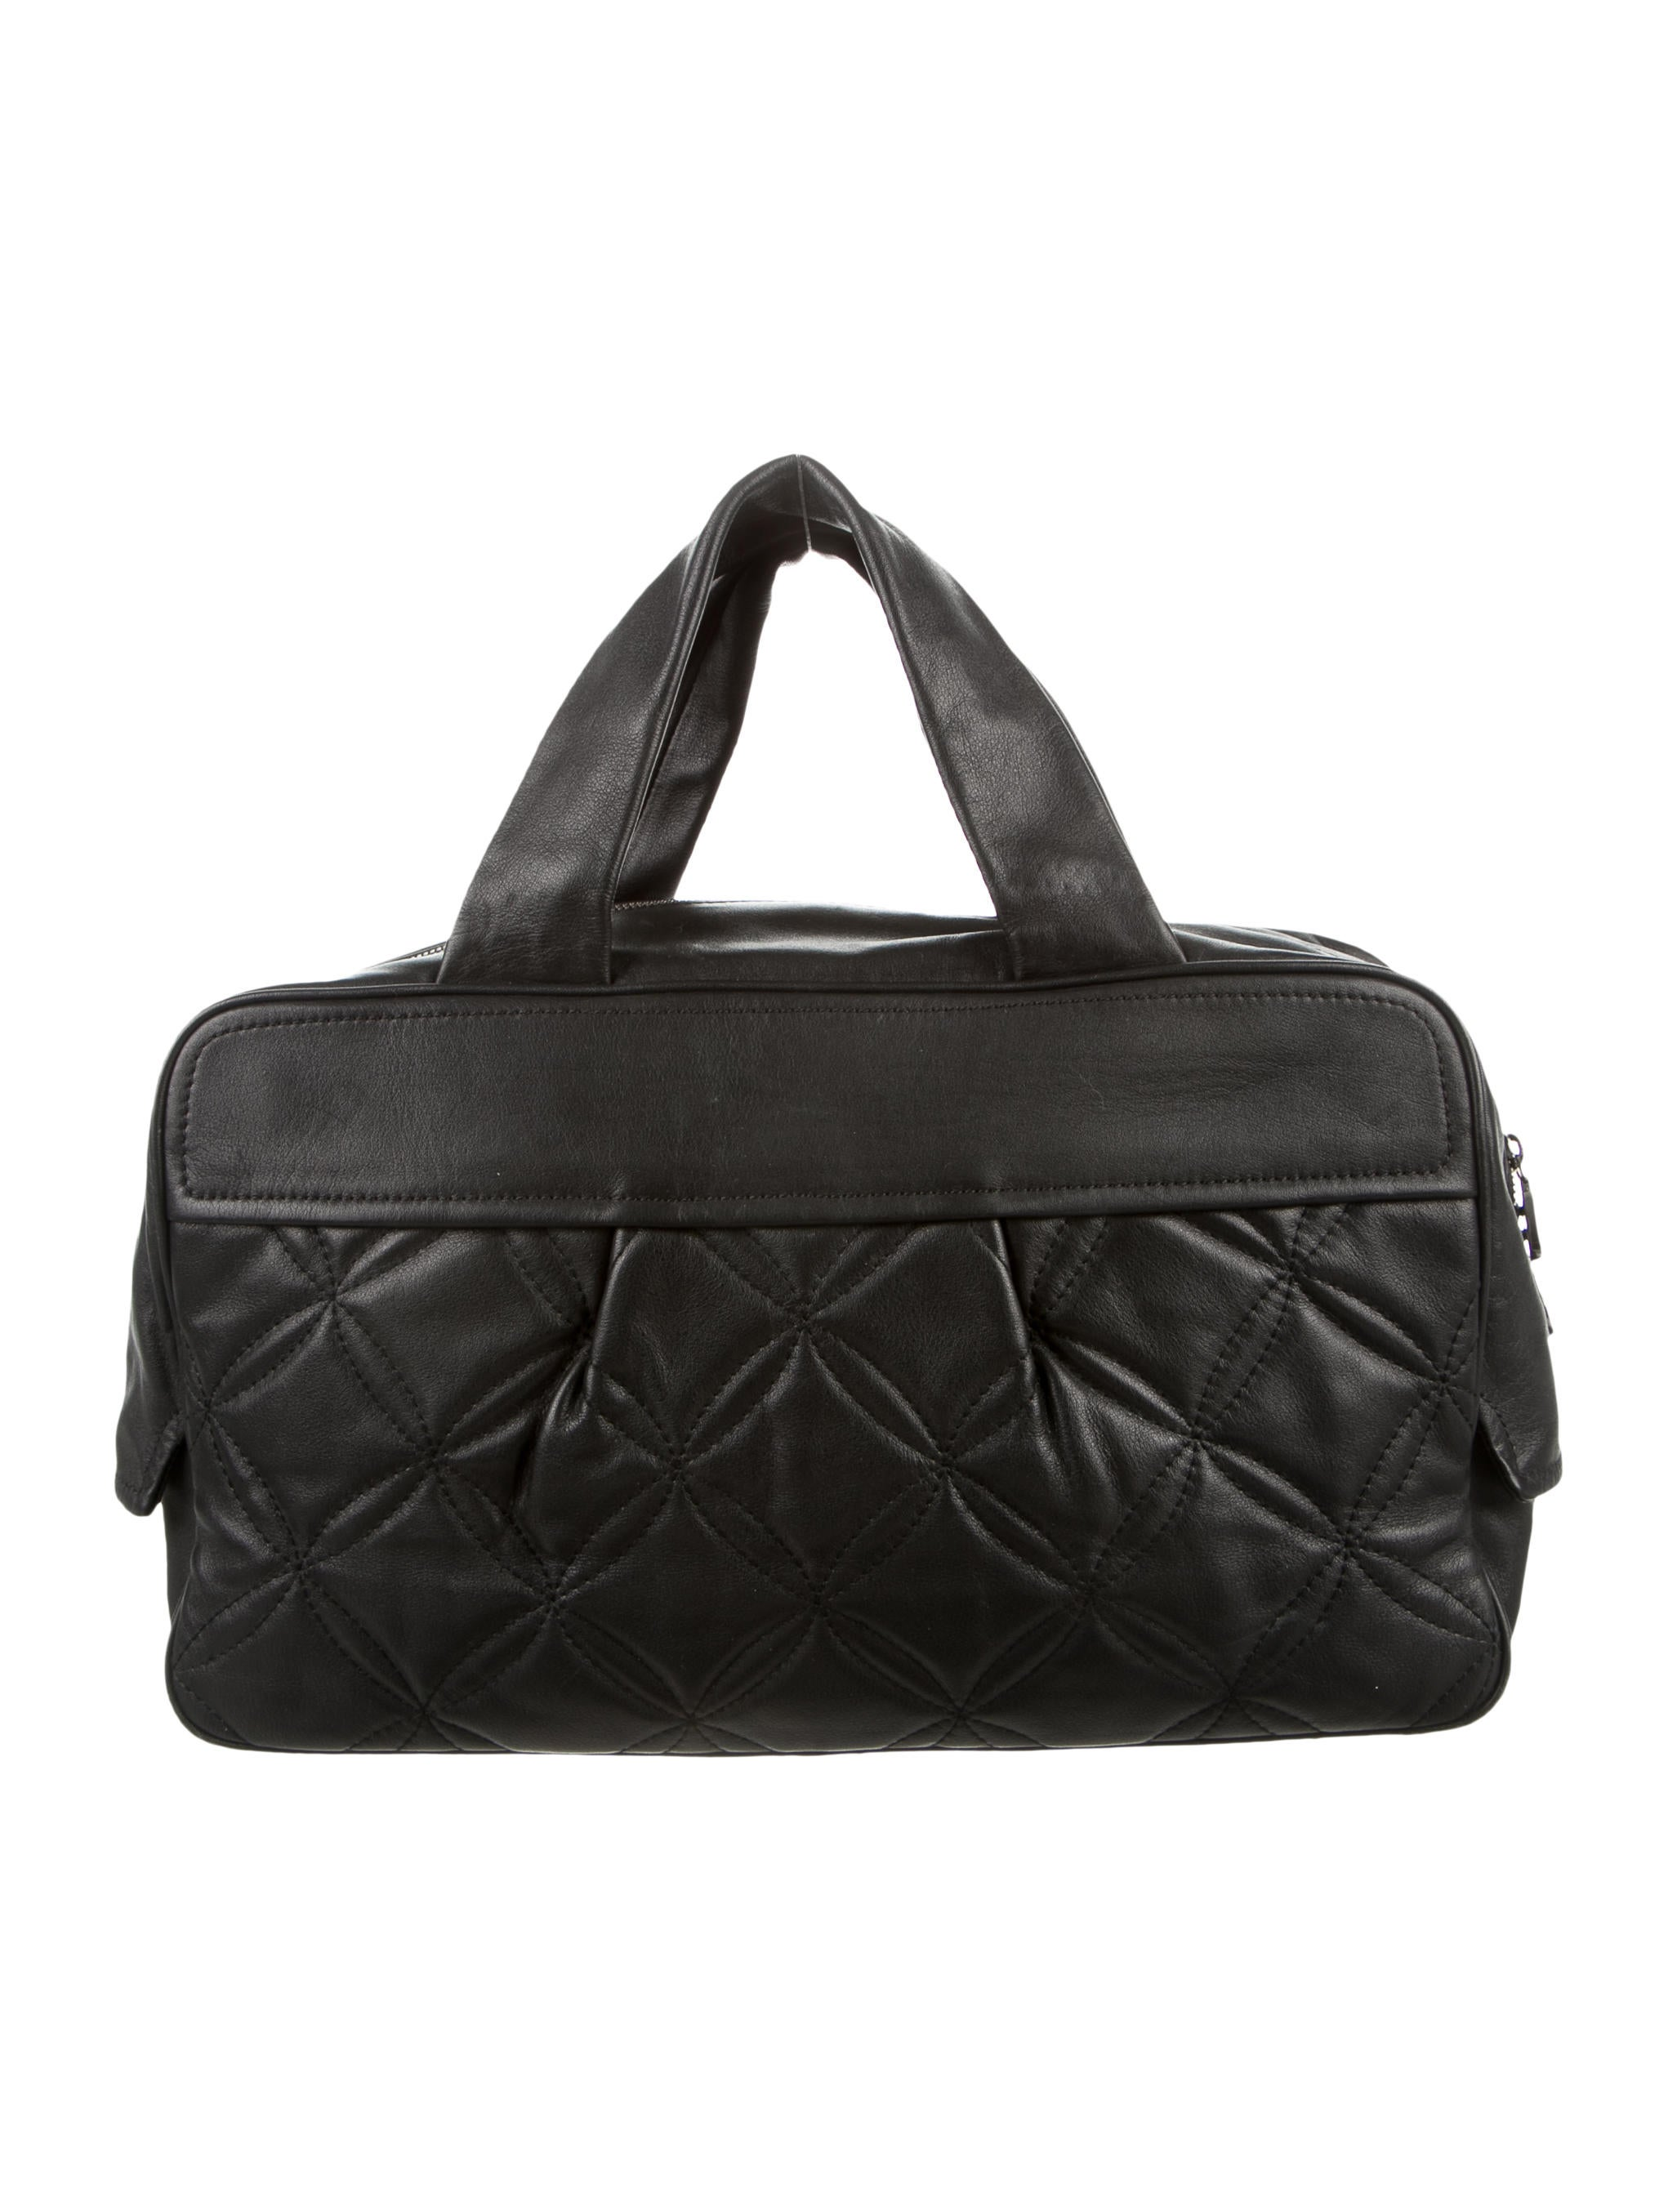 mcm medium quilted duffle bag handbags w3020744 the